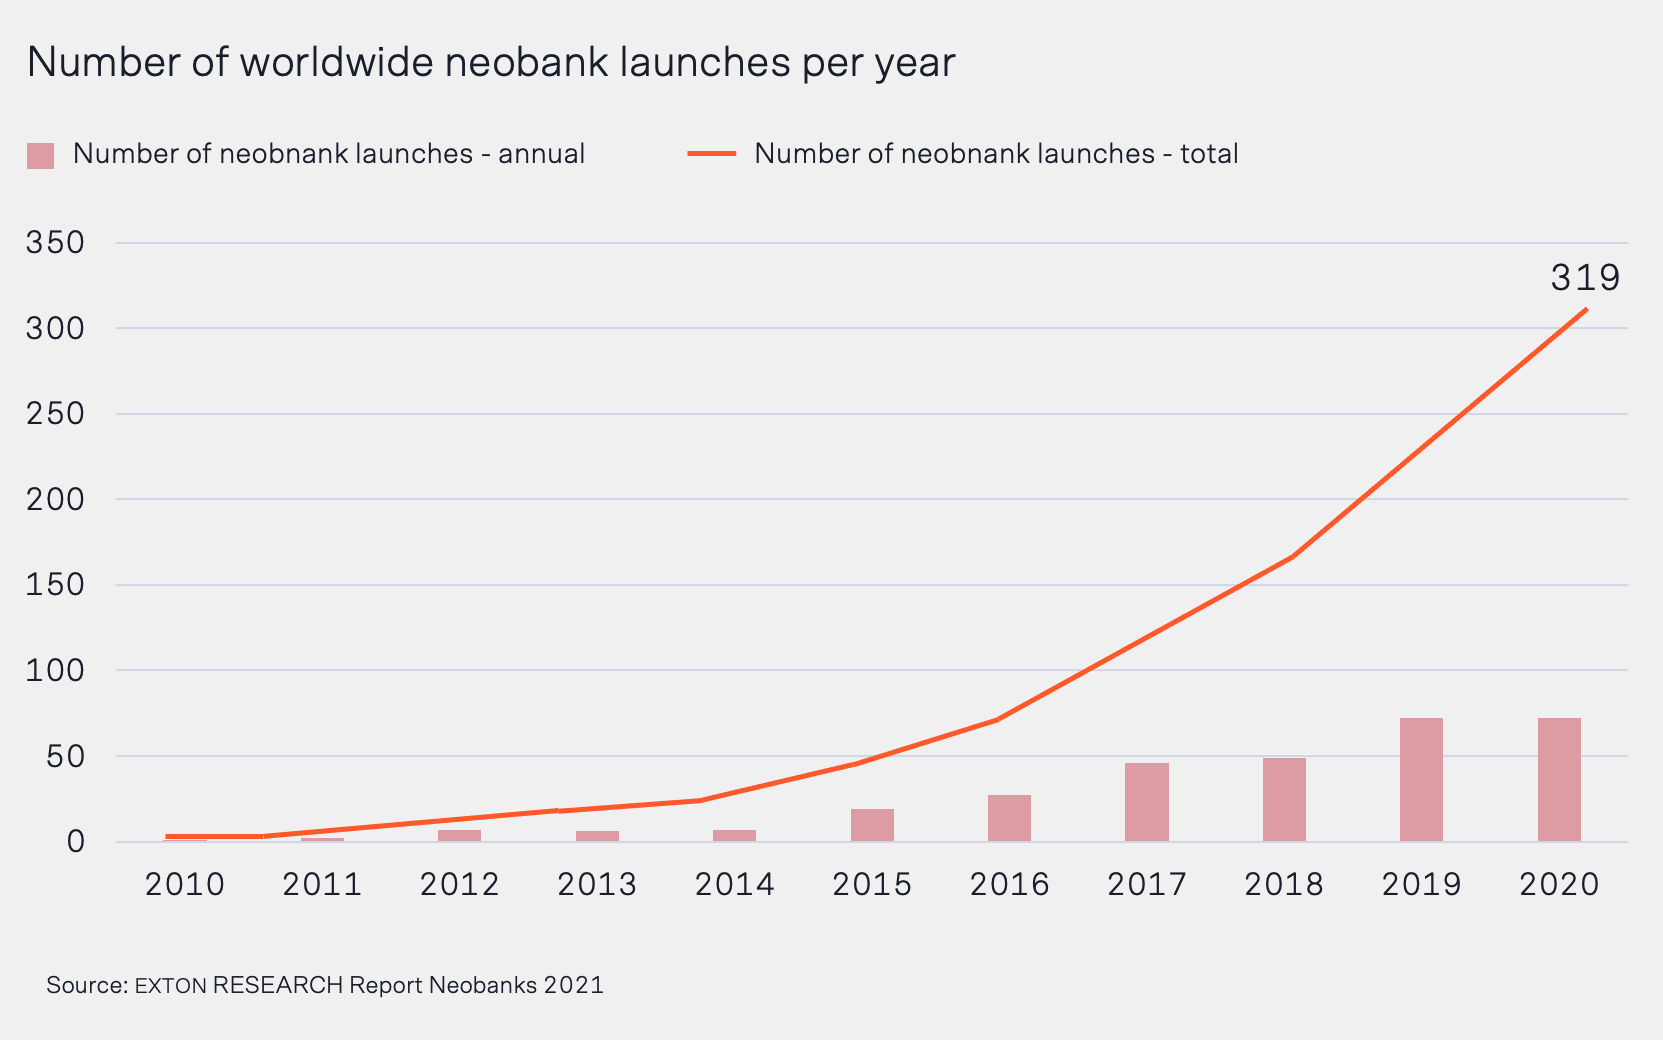 Neobank launches between 2010 and 2020